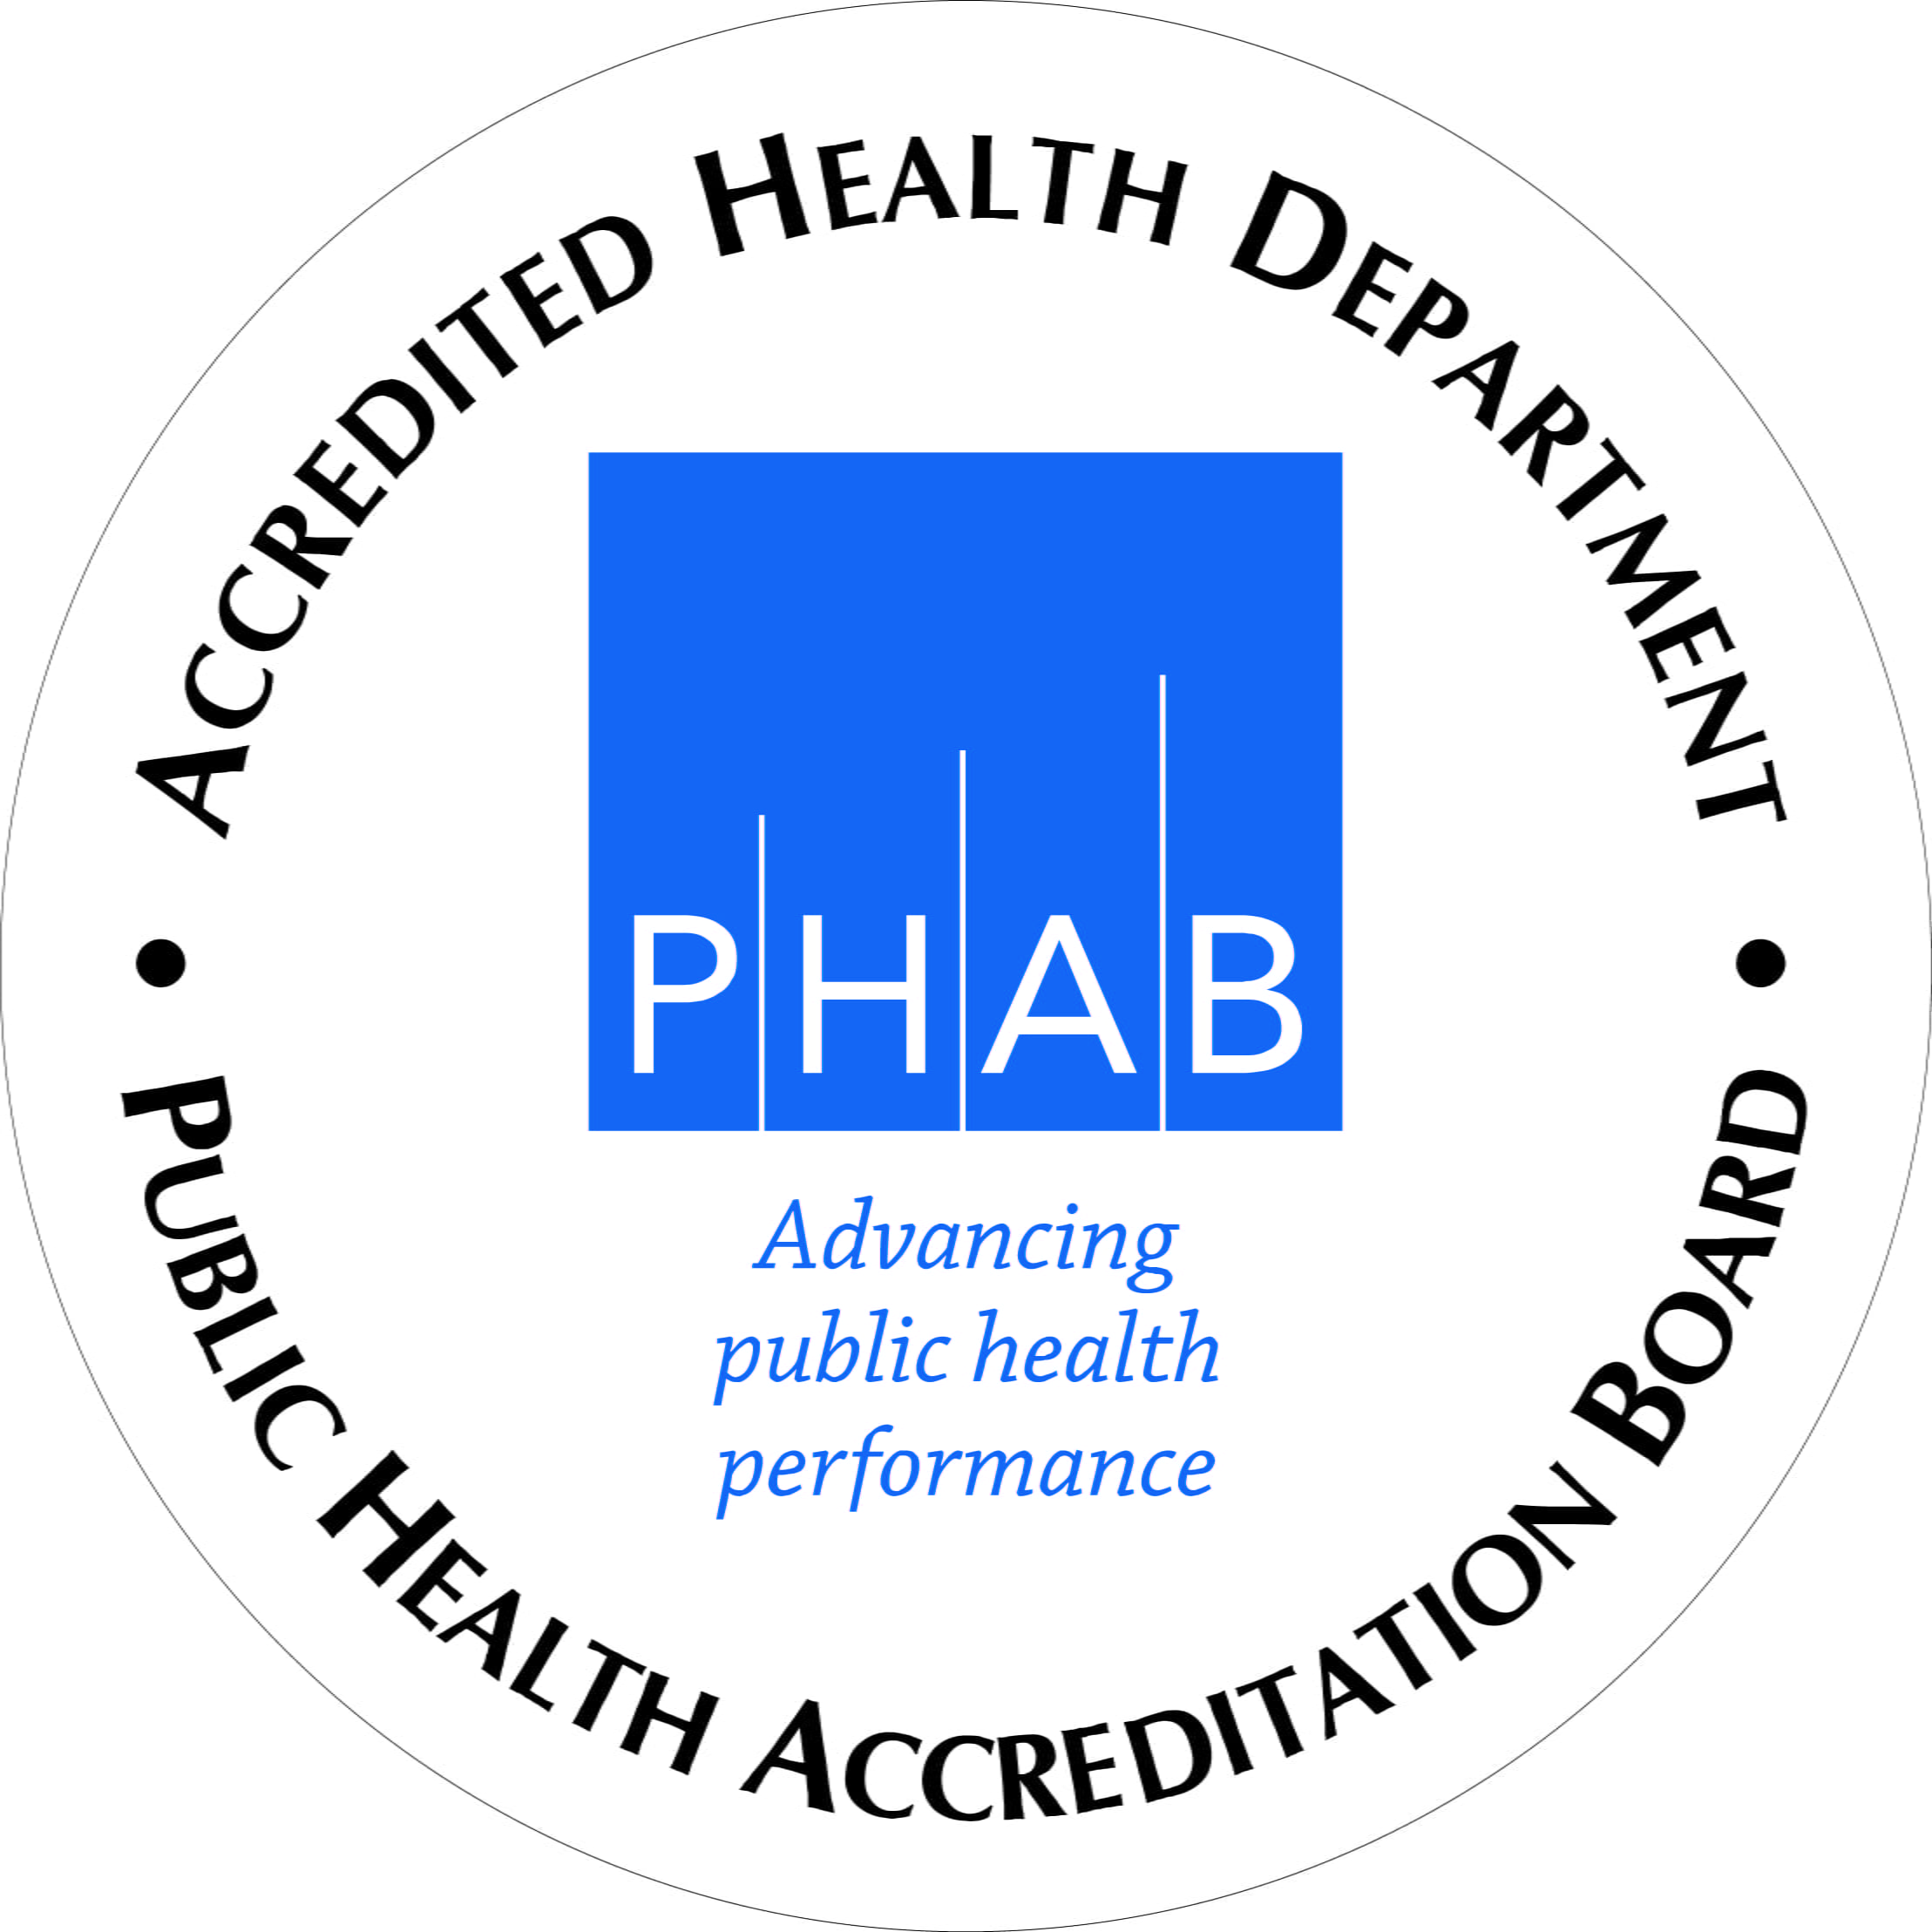 Public Health Accreditation Seal Image